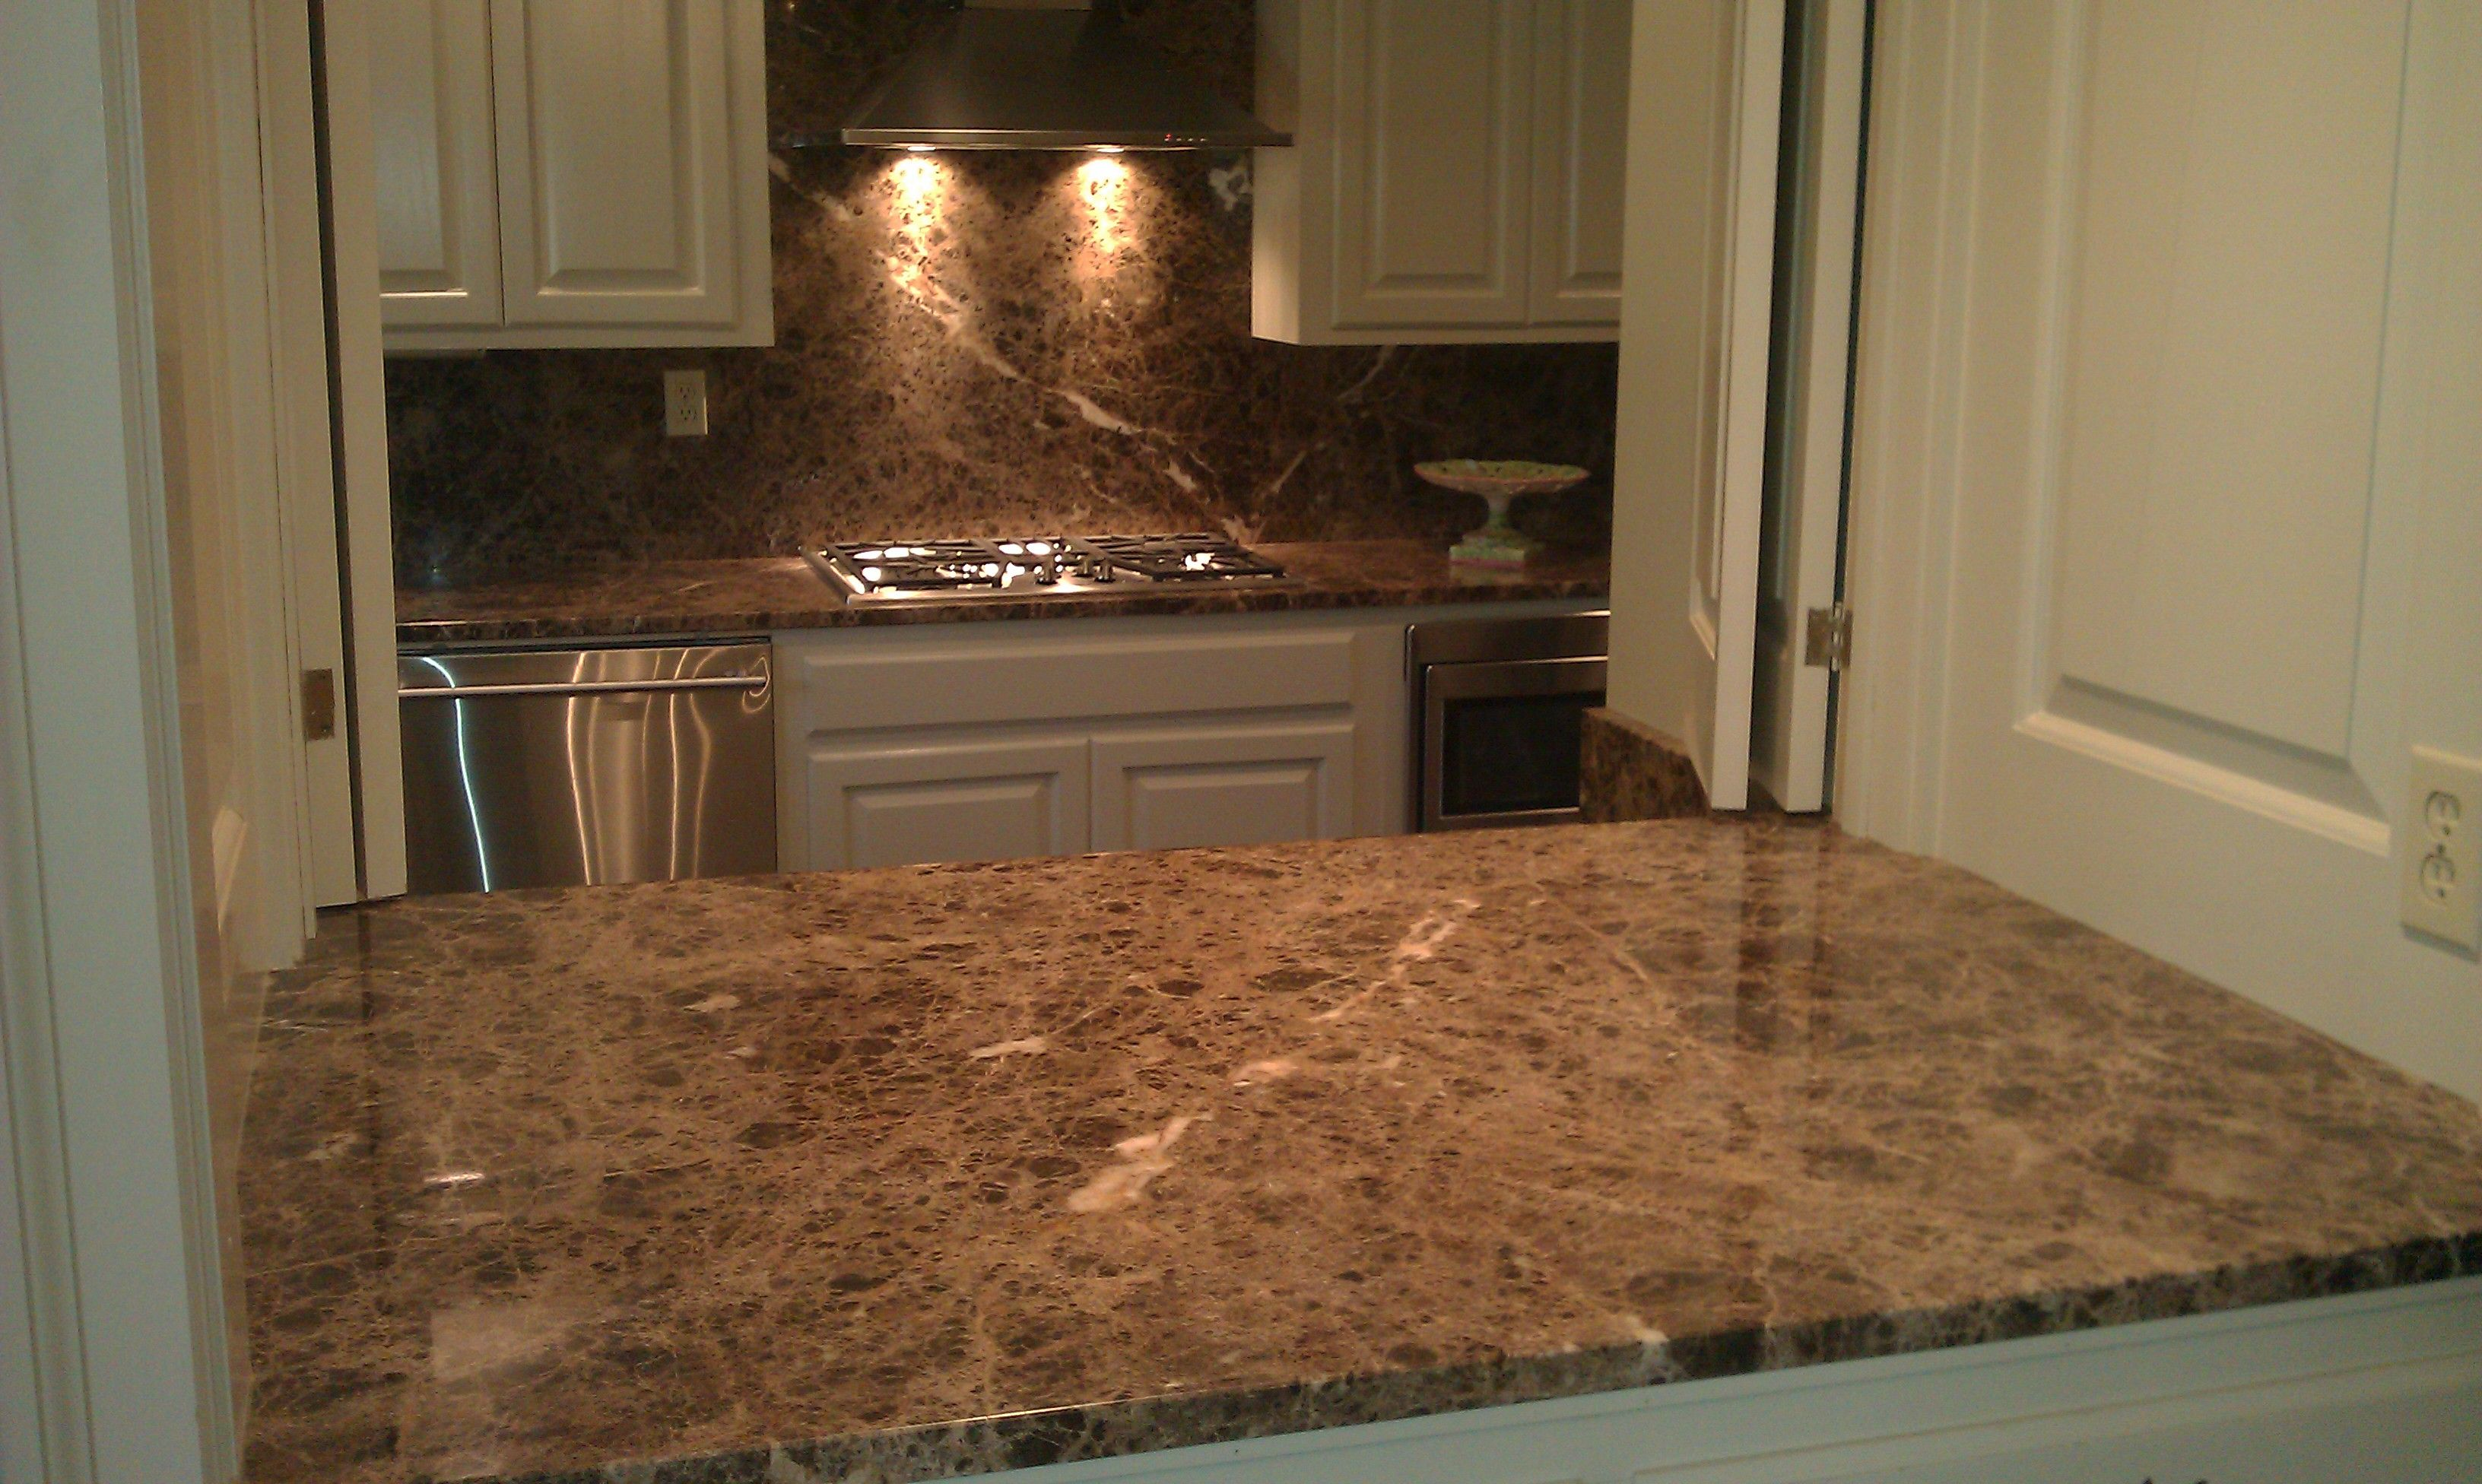 granite counter square columbus countertops texas cost nc transmations ohio remnants pieces massachusetts island tx per foot denver raleigh houston remnant long